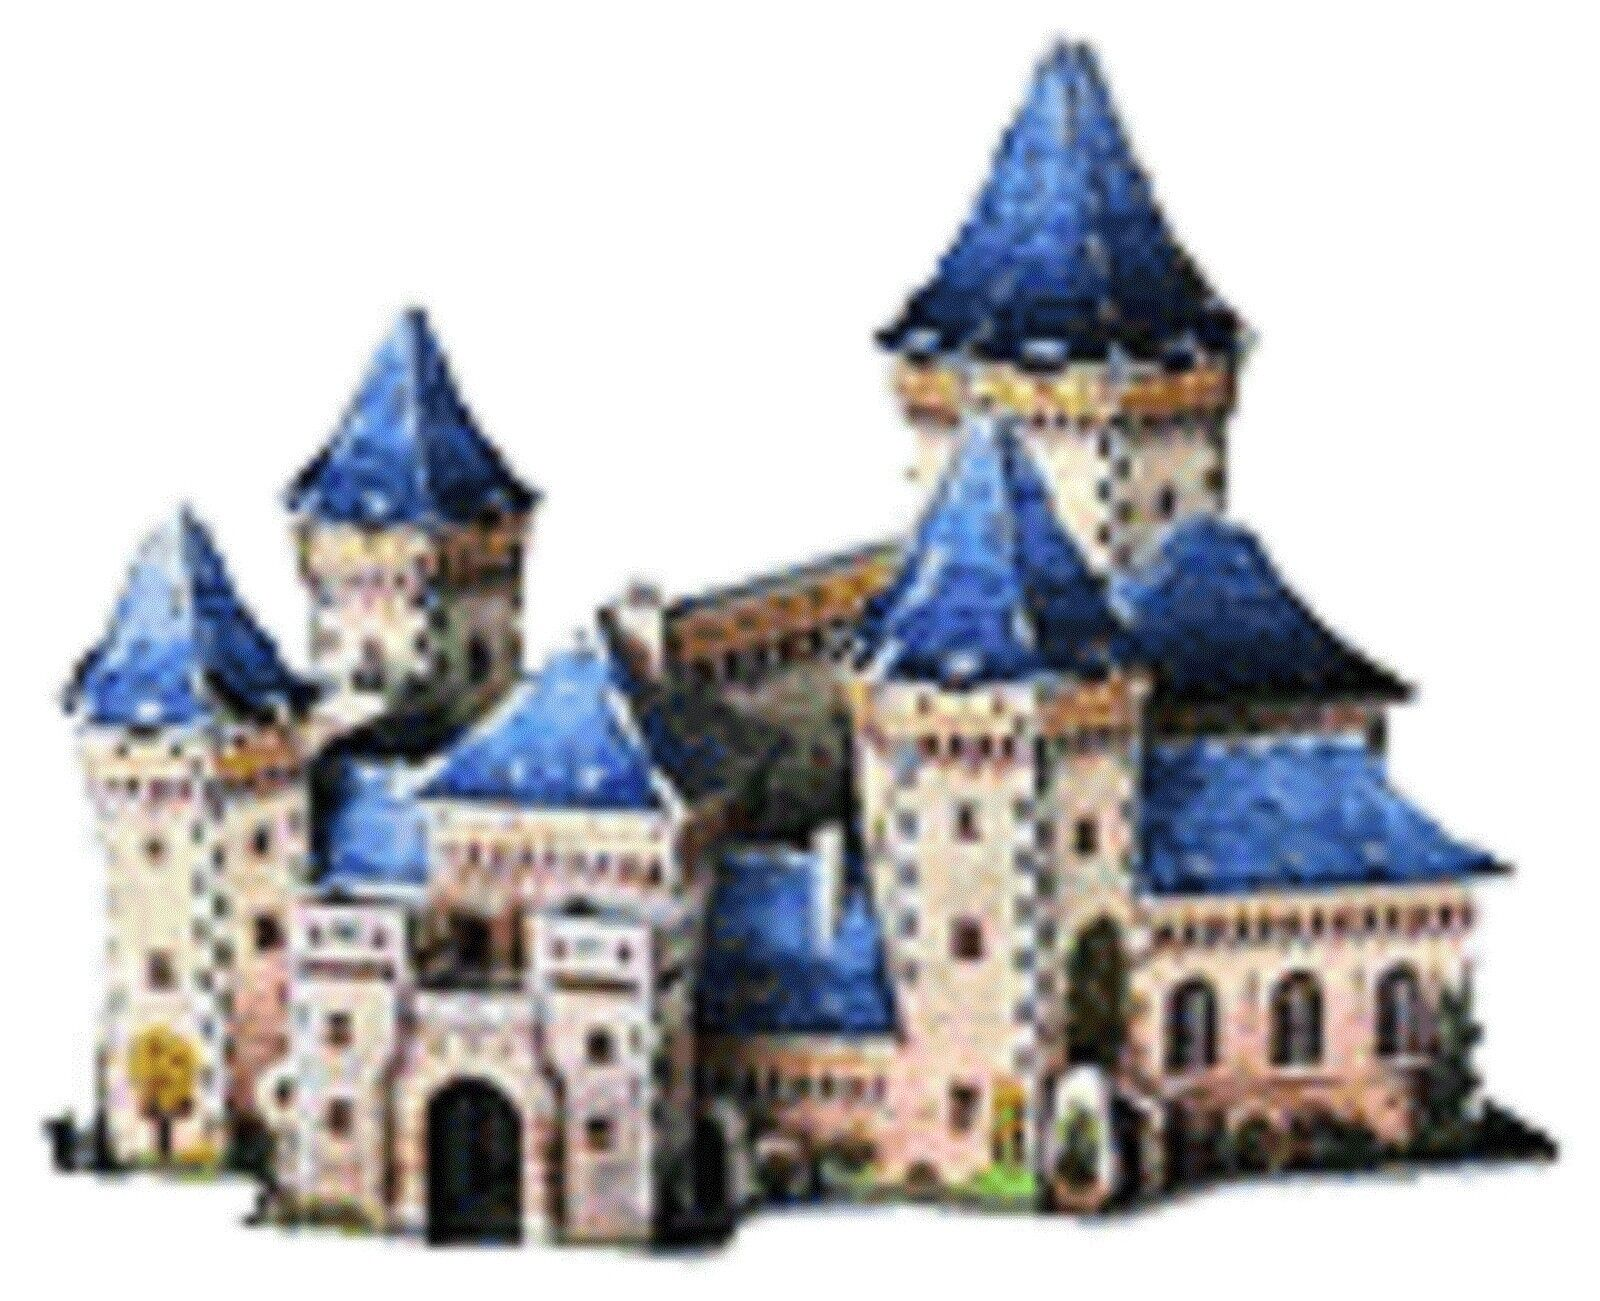 Wrebbit Puzz 3D Puzzle Foam - Medieval Castle - New Sealed Collectible